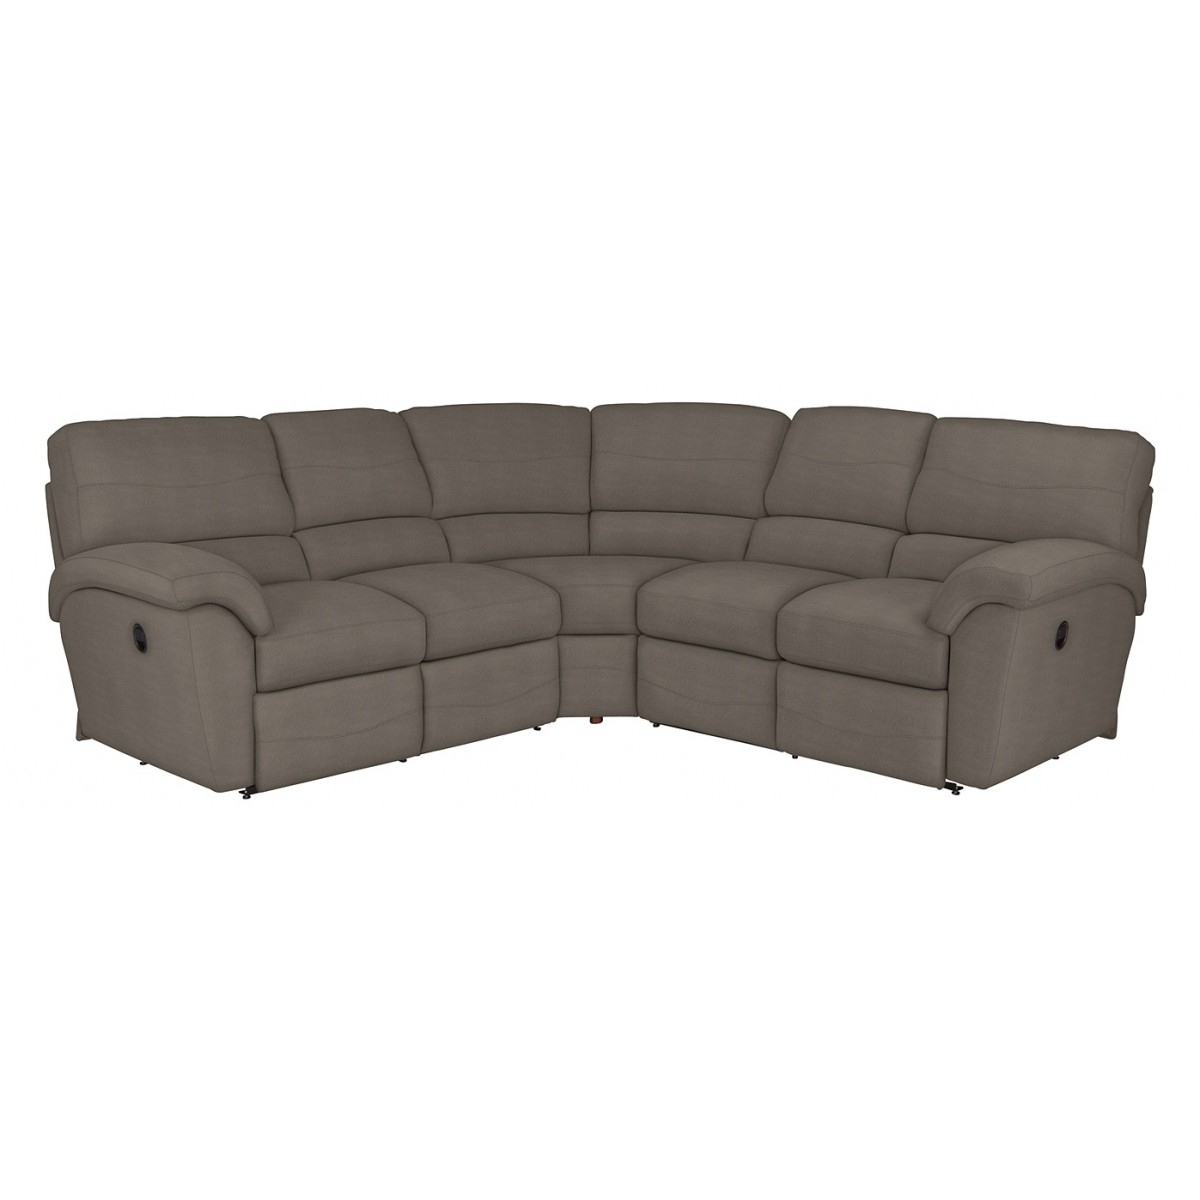 Popular Z Boy Reese Reclining Sectional With Lazyboy Sectional Sofas (View 9 of 15)